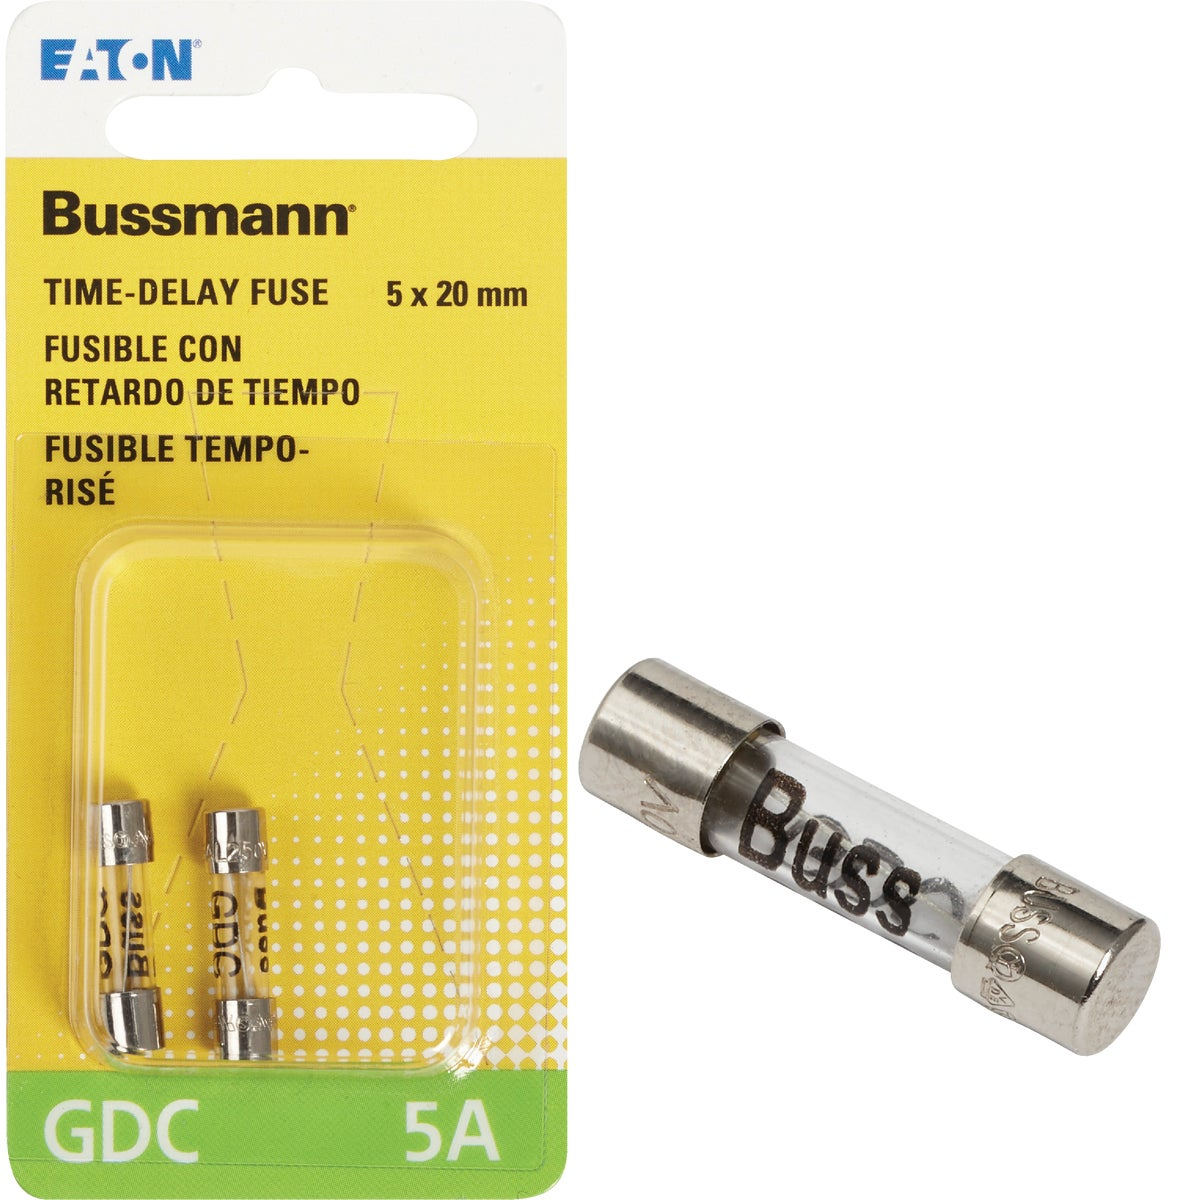 5A CARTRIDGE FUSE - BP/GDC-5A by Bussmann Cooper